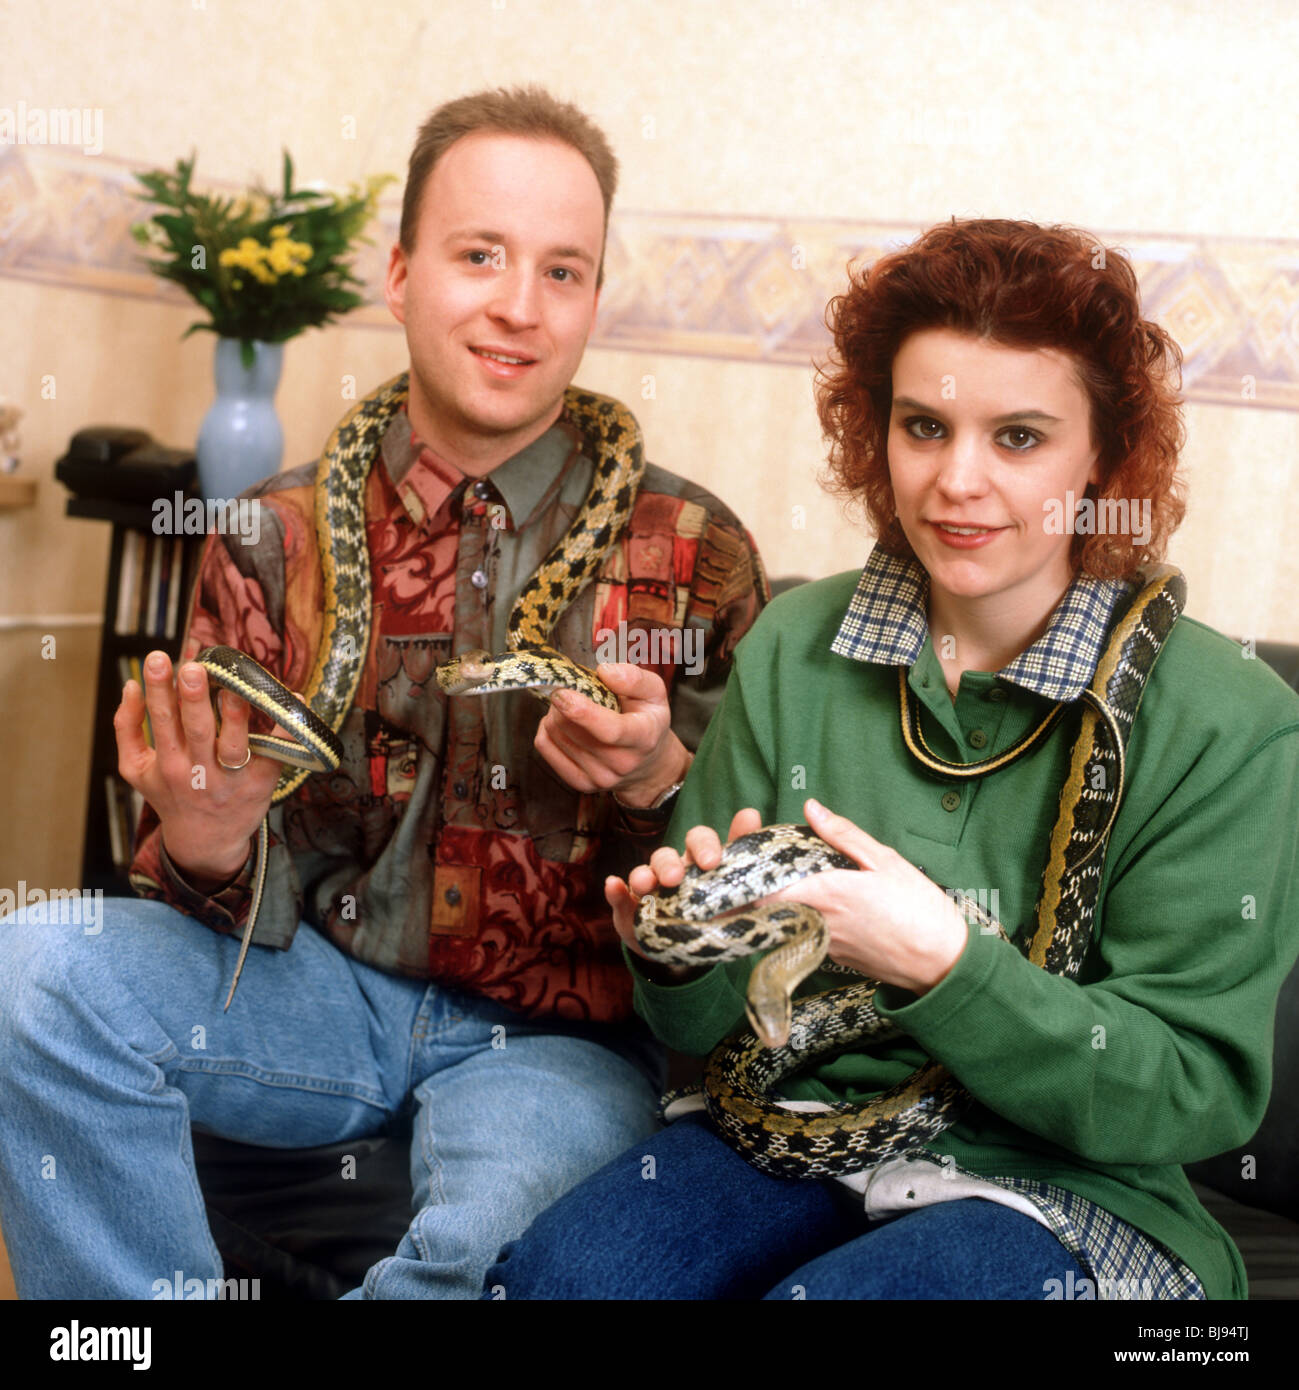 Couple holding snakes in hands sit on couch indoors  - SerieCVS500201b - Stock Image